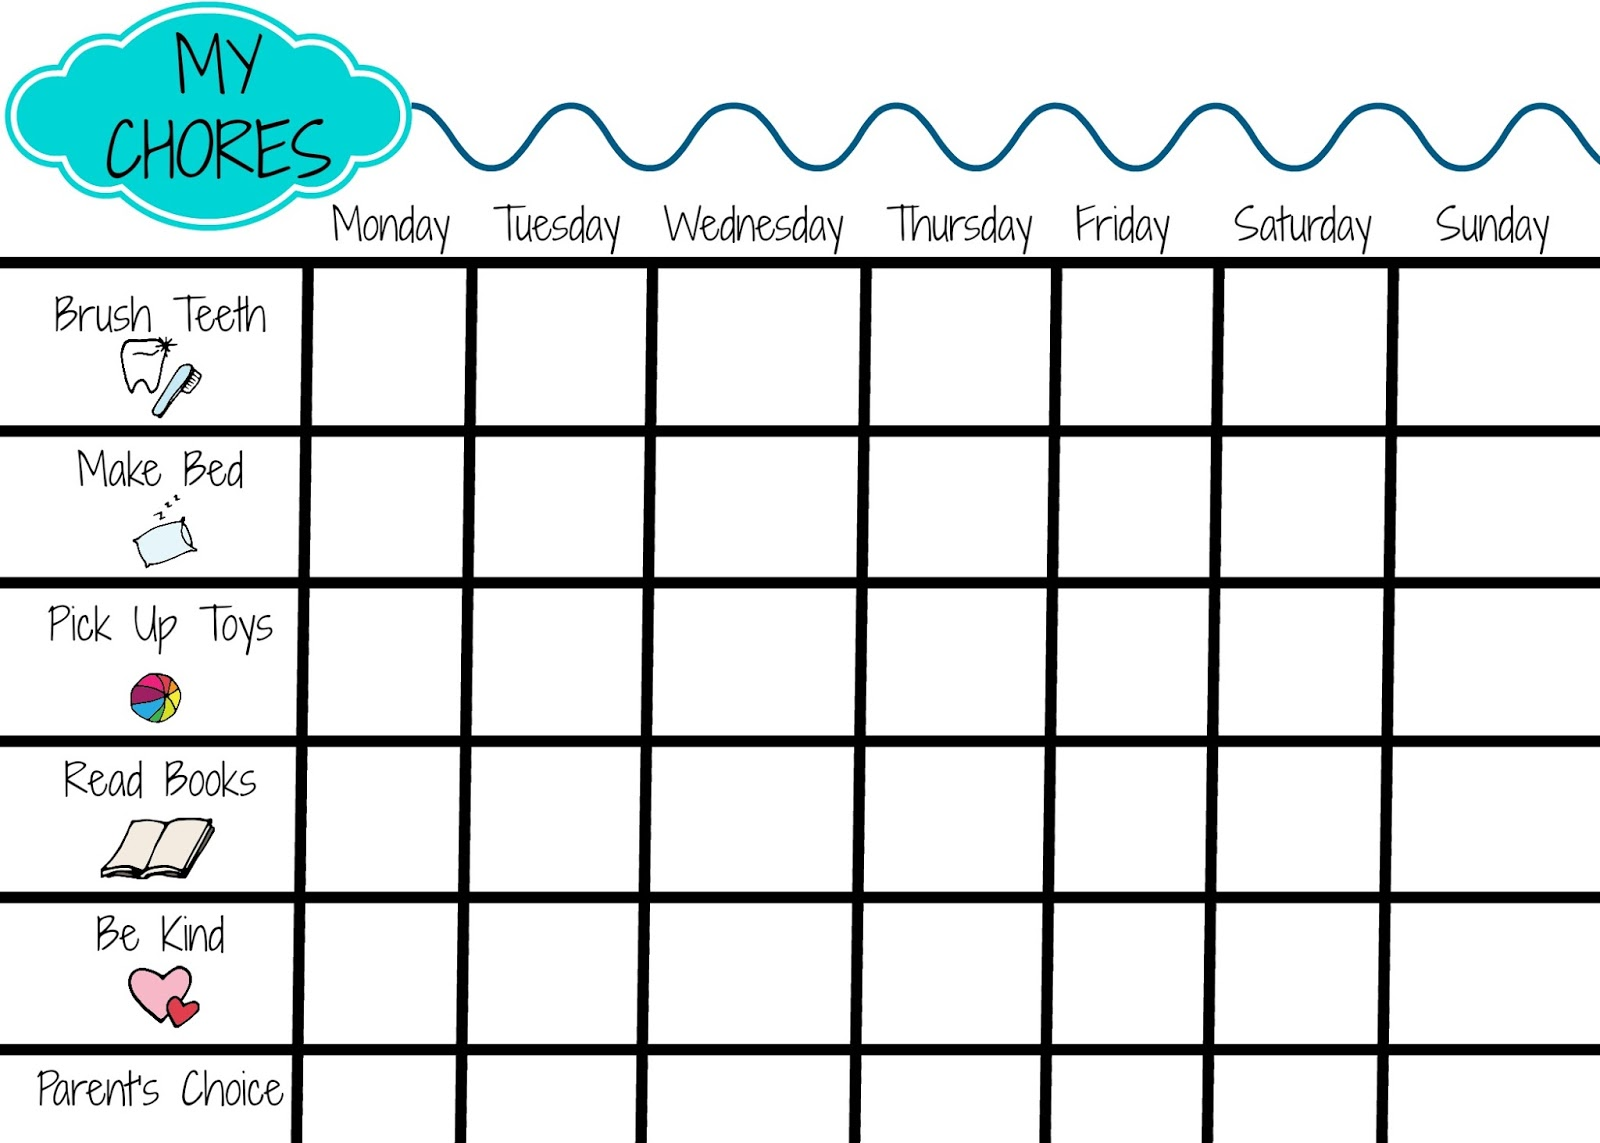 image about Printable Job Chart named Printable Chore Chart for Children - The Chirping Mothers